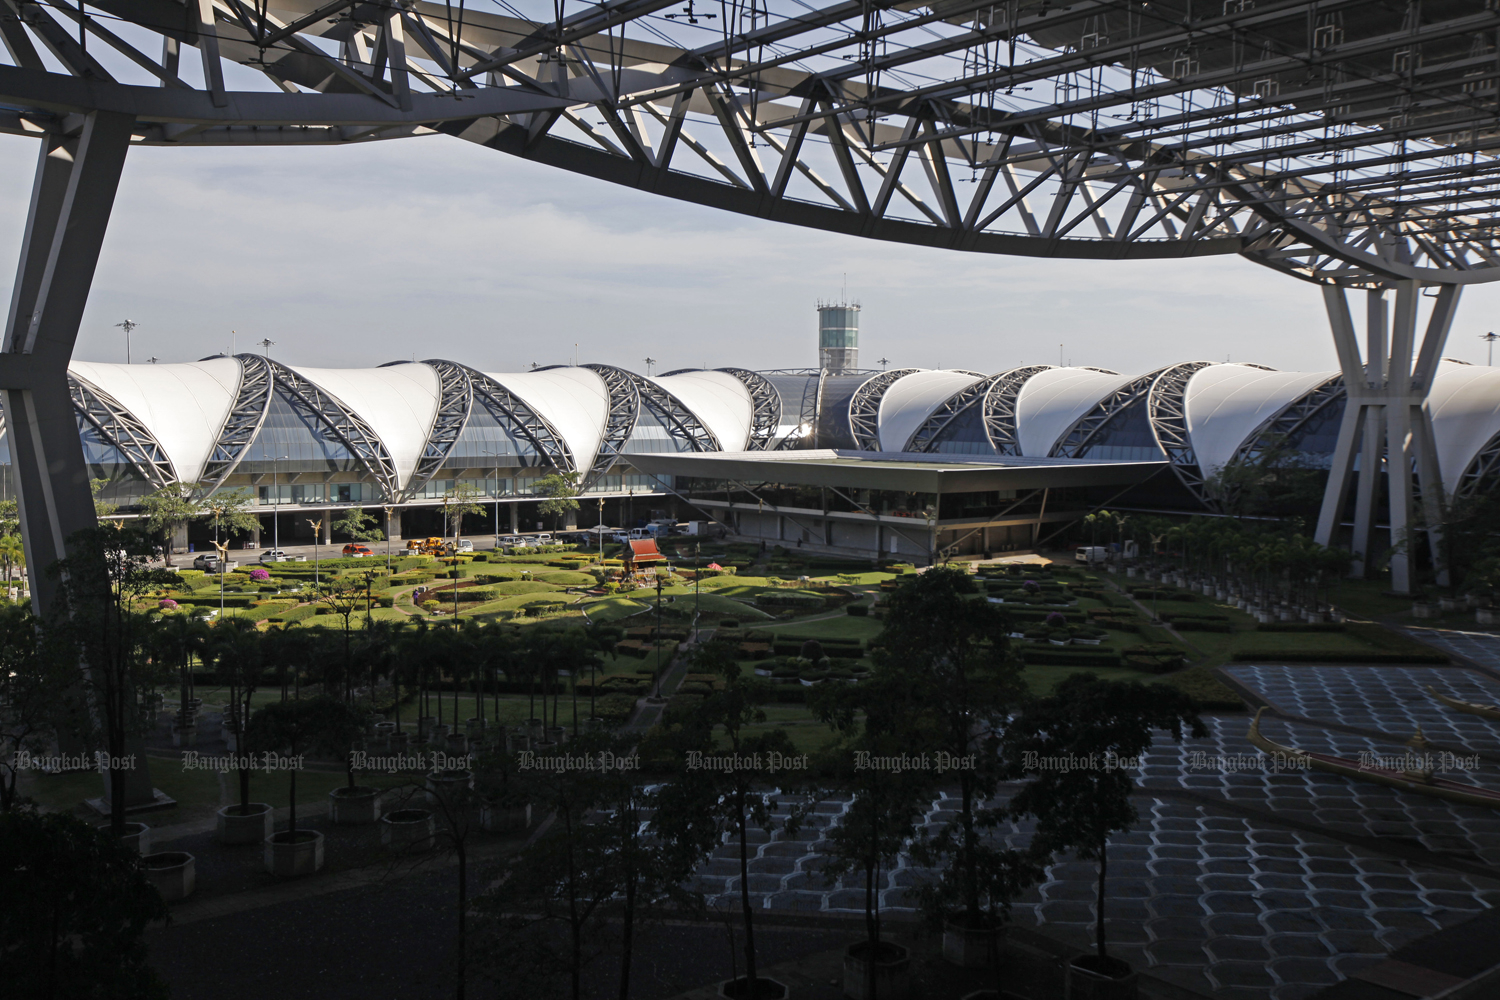 Suvarnabhumi is one of the airports operated by Airports of Thailand Plc. (Bangkok Post photo)